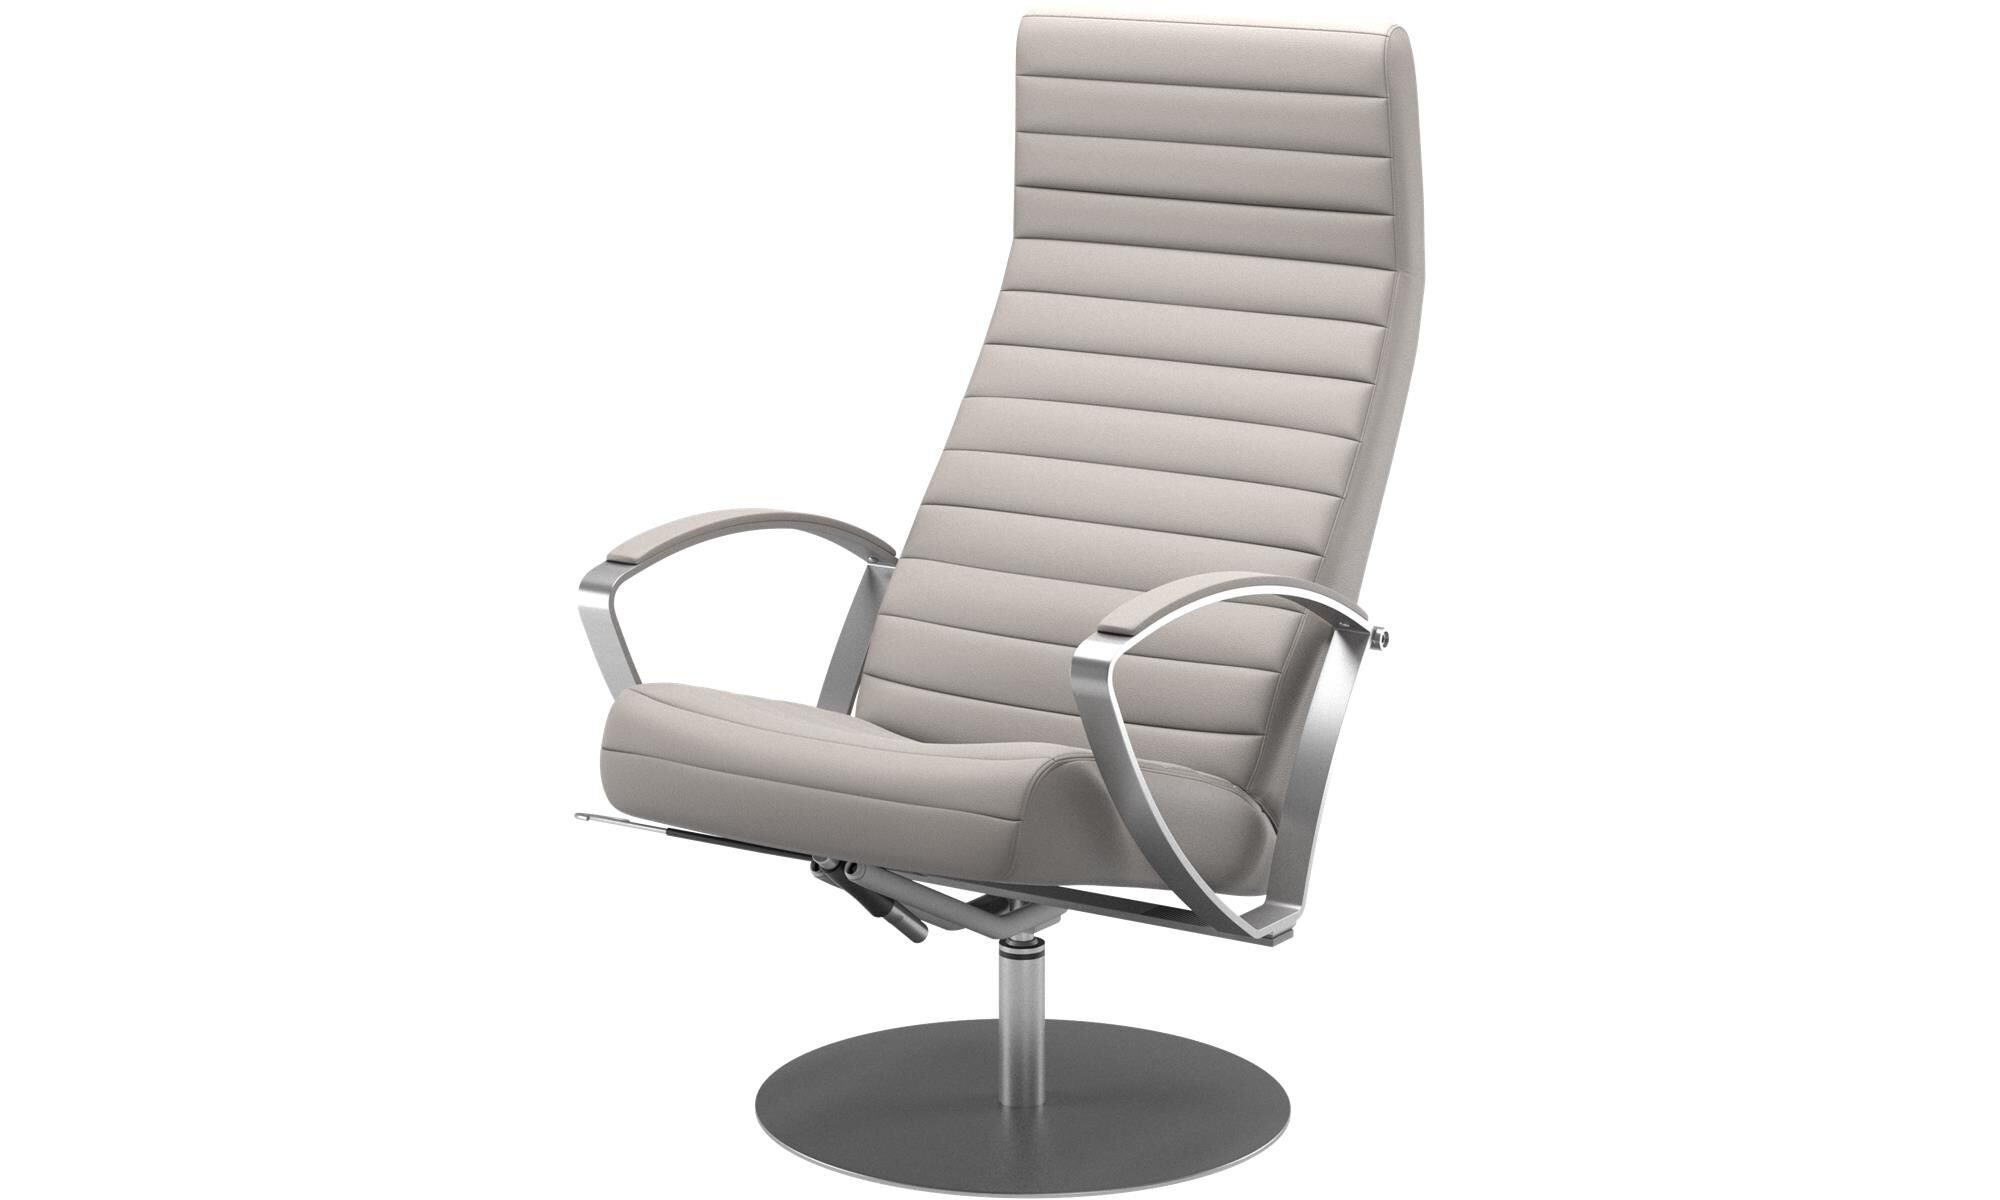 Armchairs   Wing Recliner With Swivel Function   Beige   Leather